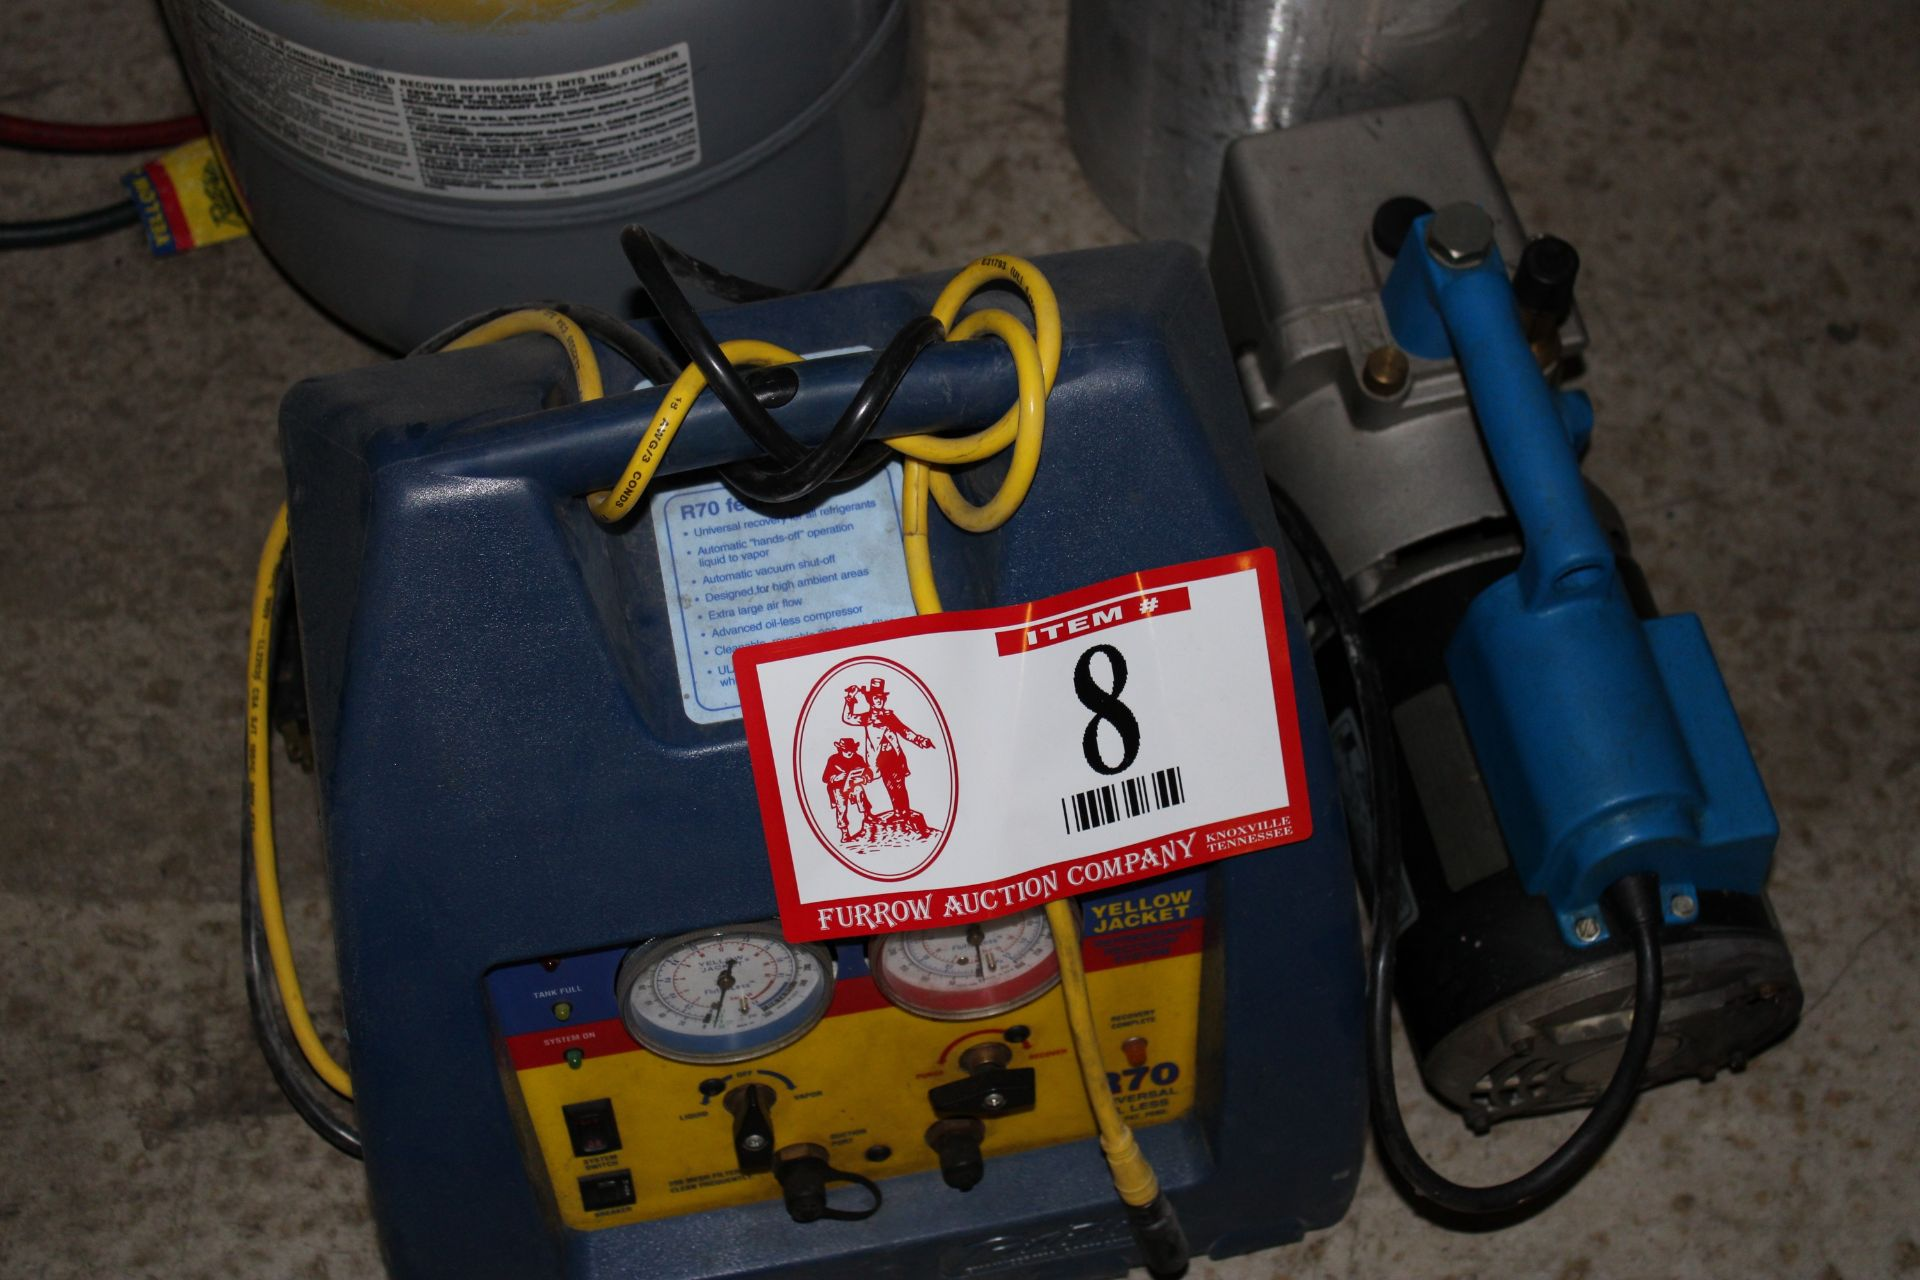 Lot 8 - Yellow Jacket R70 Refrigerate Recovery/Filler System and (1) Robinair SPX Vacuum Pump, Nitrogen Tank